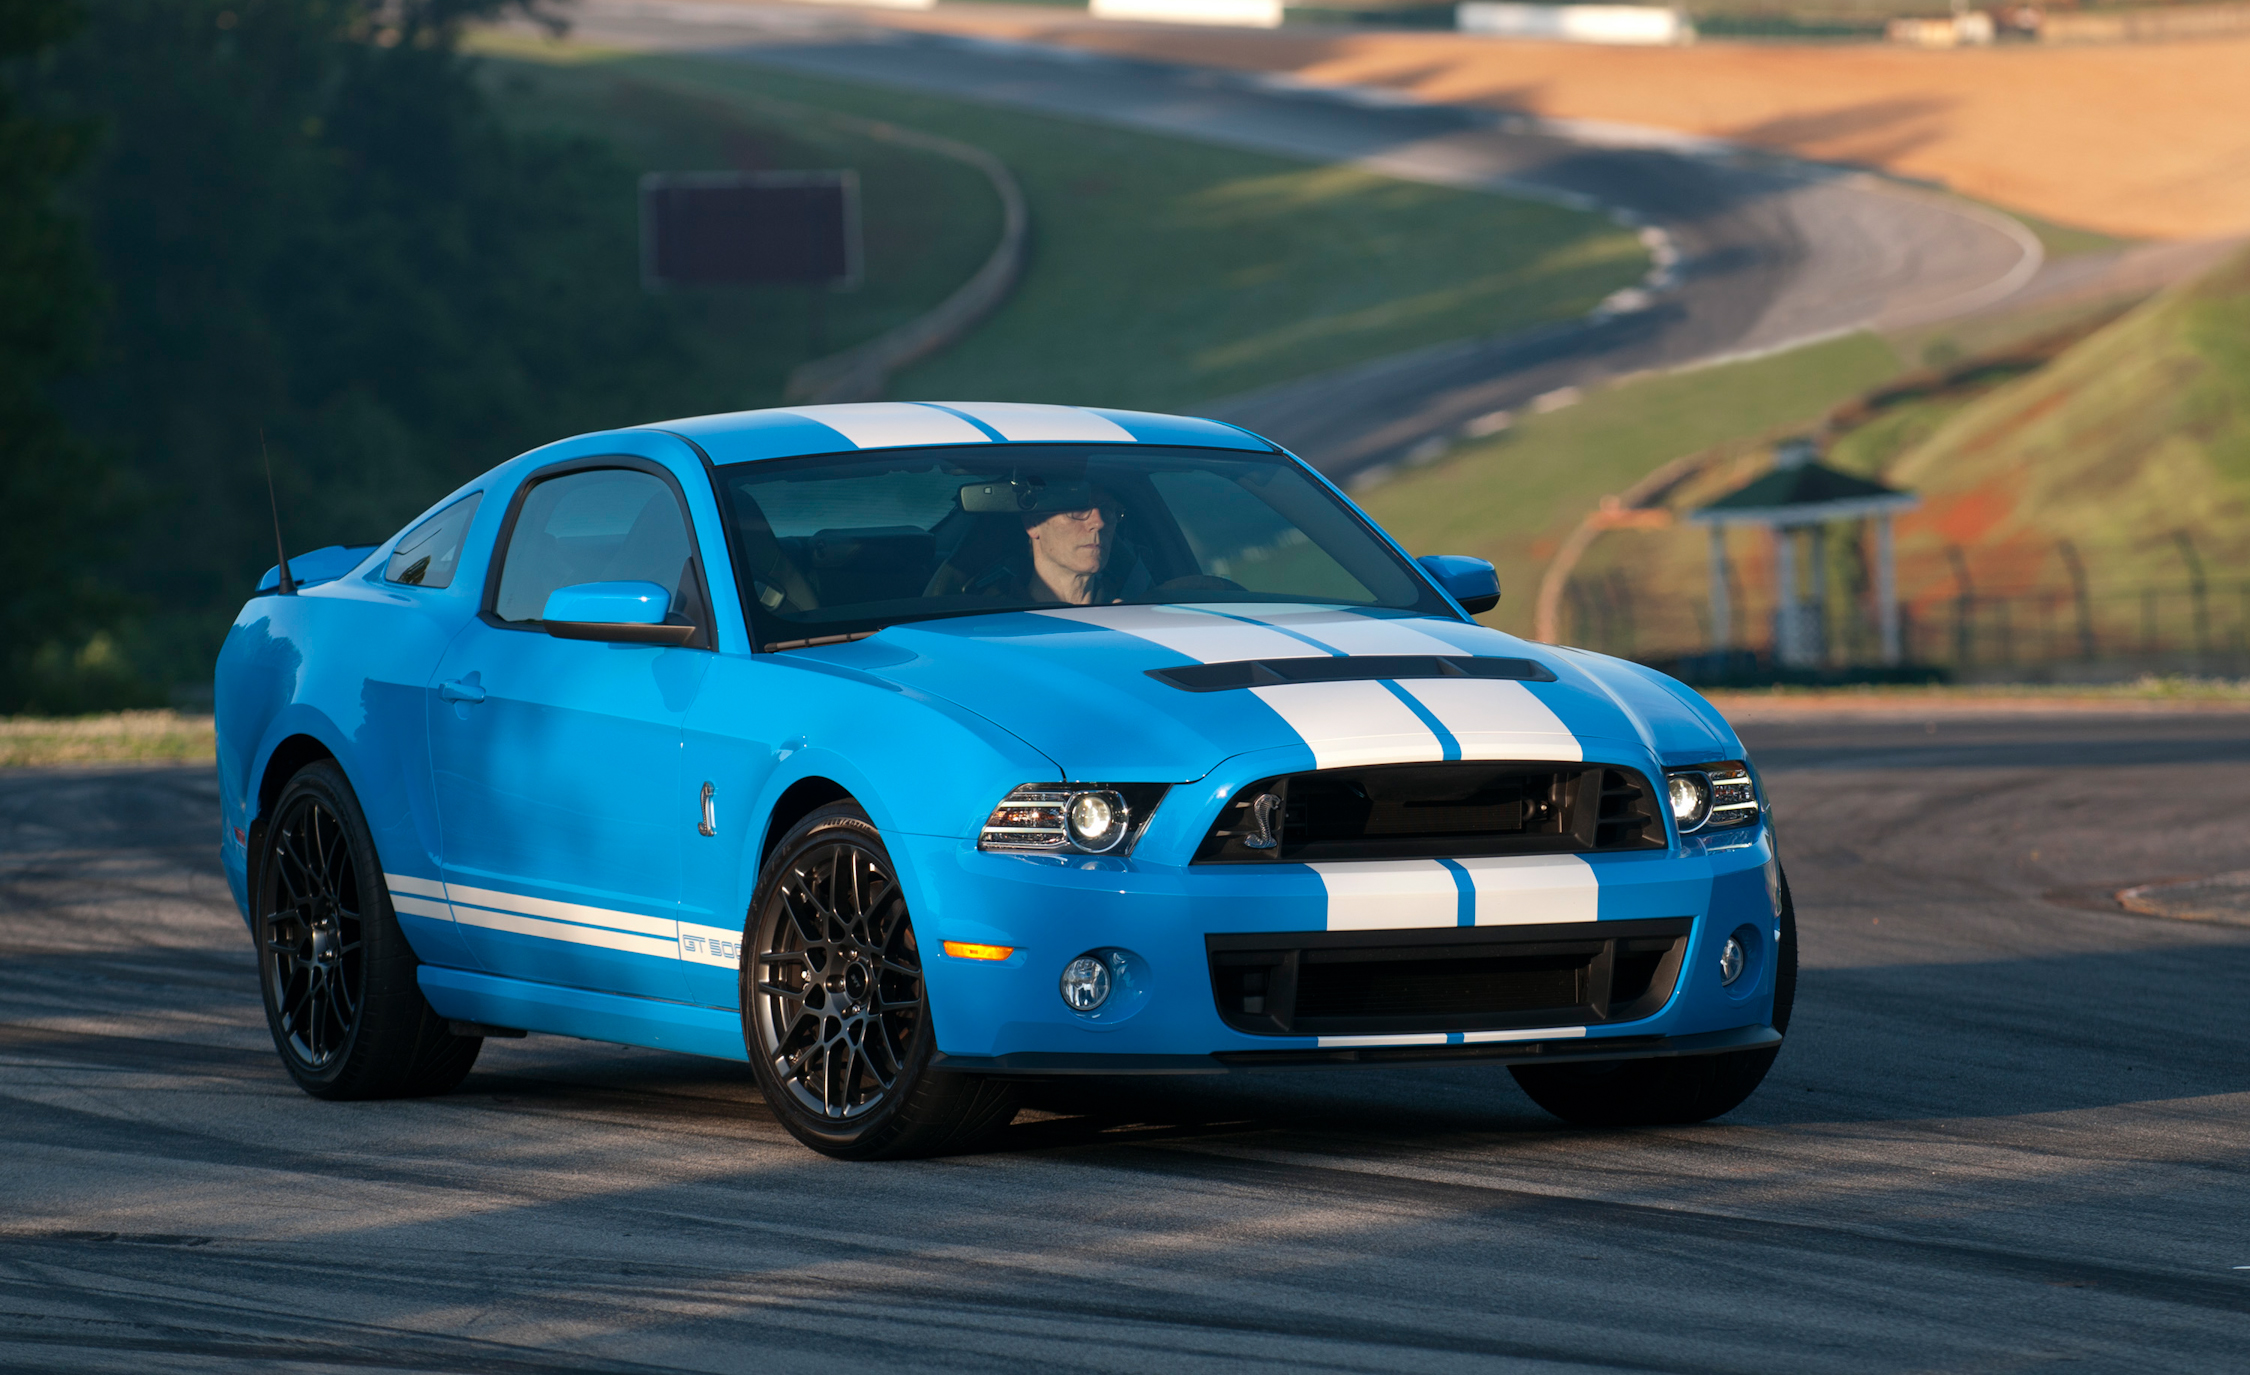 Ford Mustang Shelby GT500 (View 35 of 47)